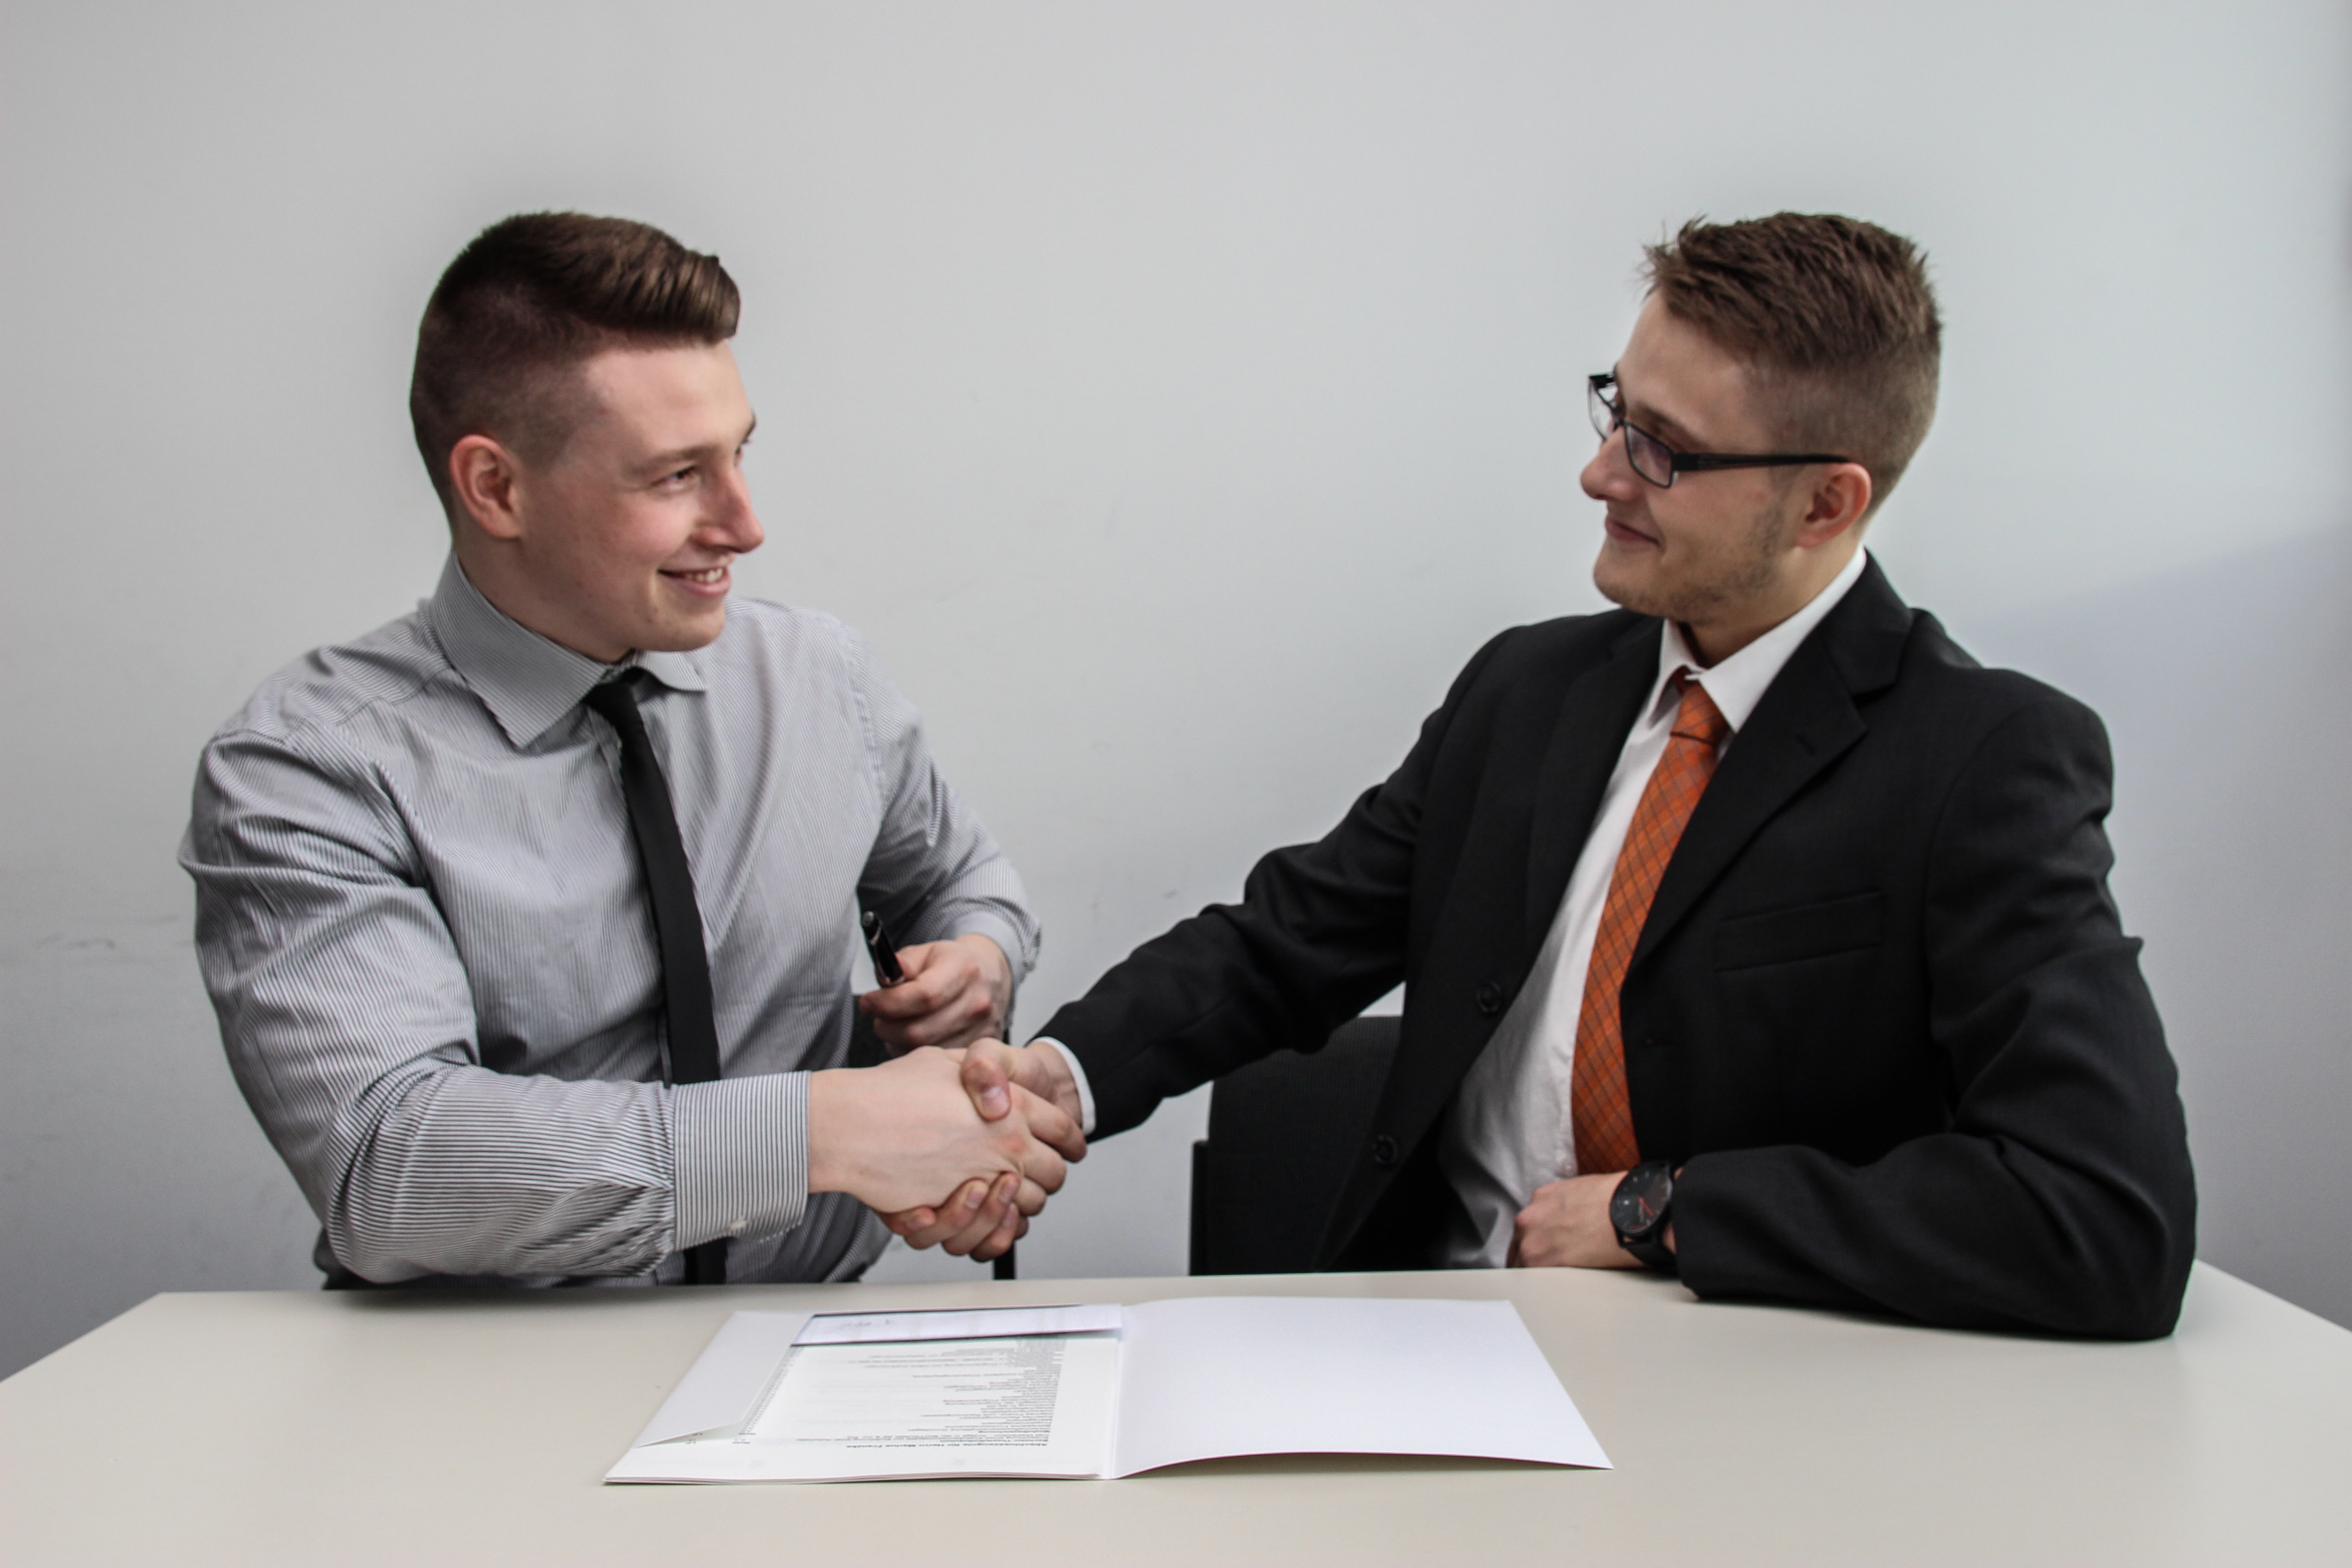 Medicare and Life Insurance Agent Partnerships